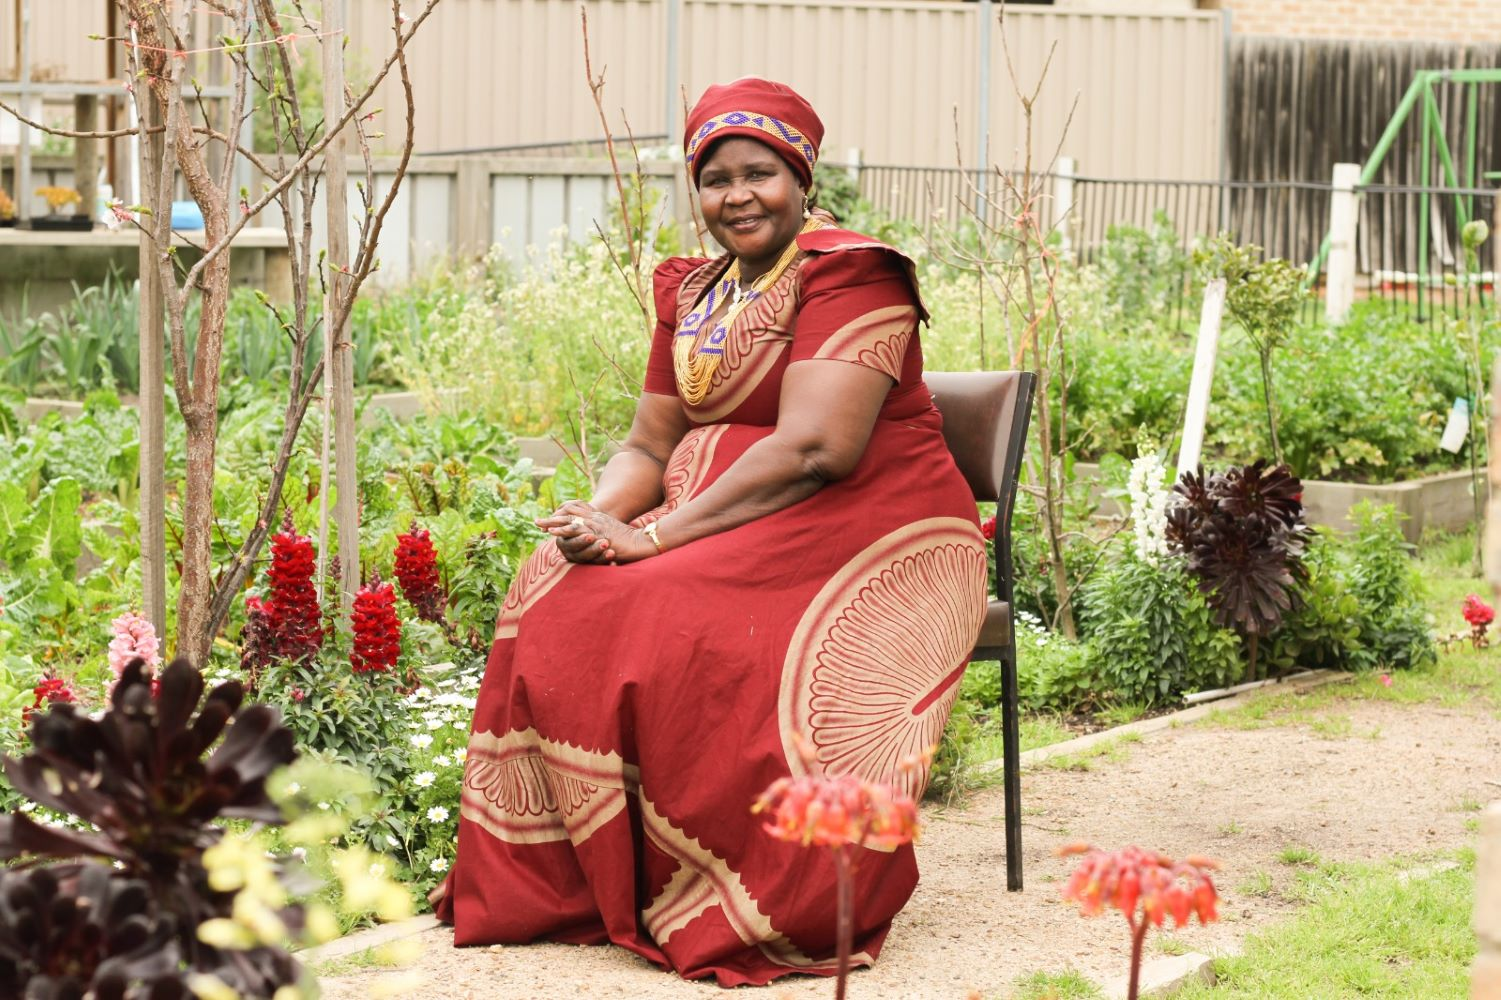 A smiling lady wearing traditional red African dress with head wear siting in a chair in a garden